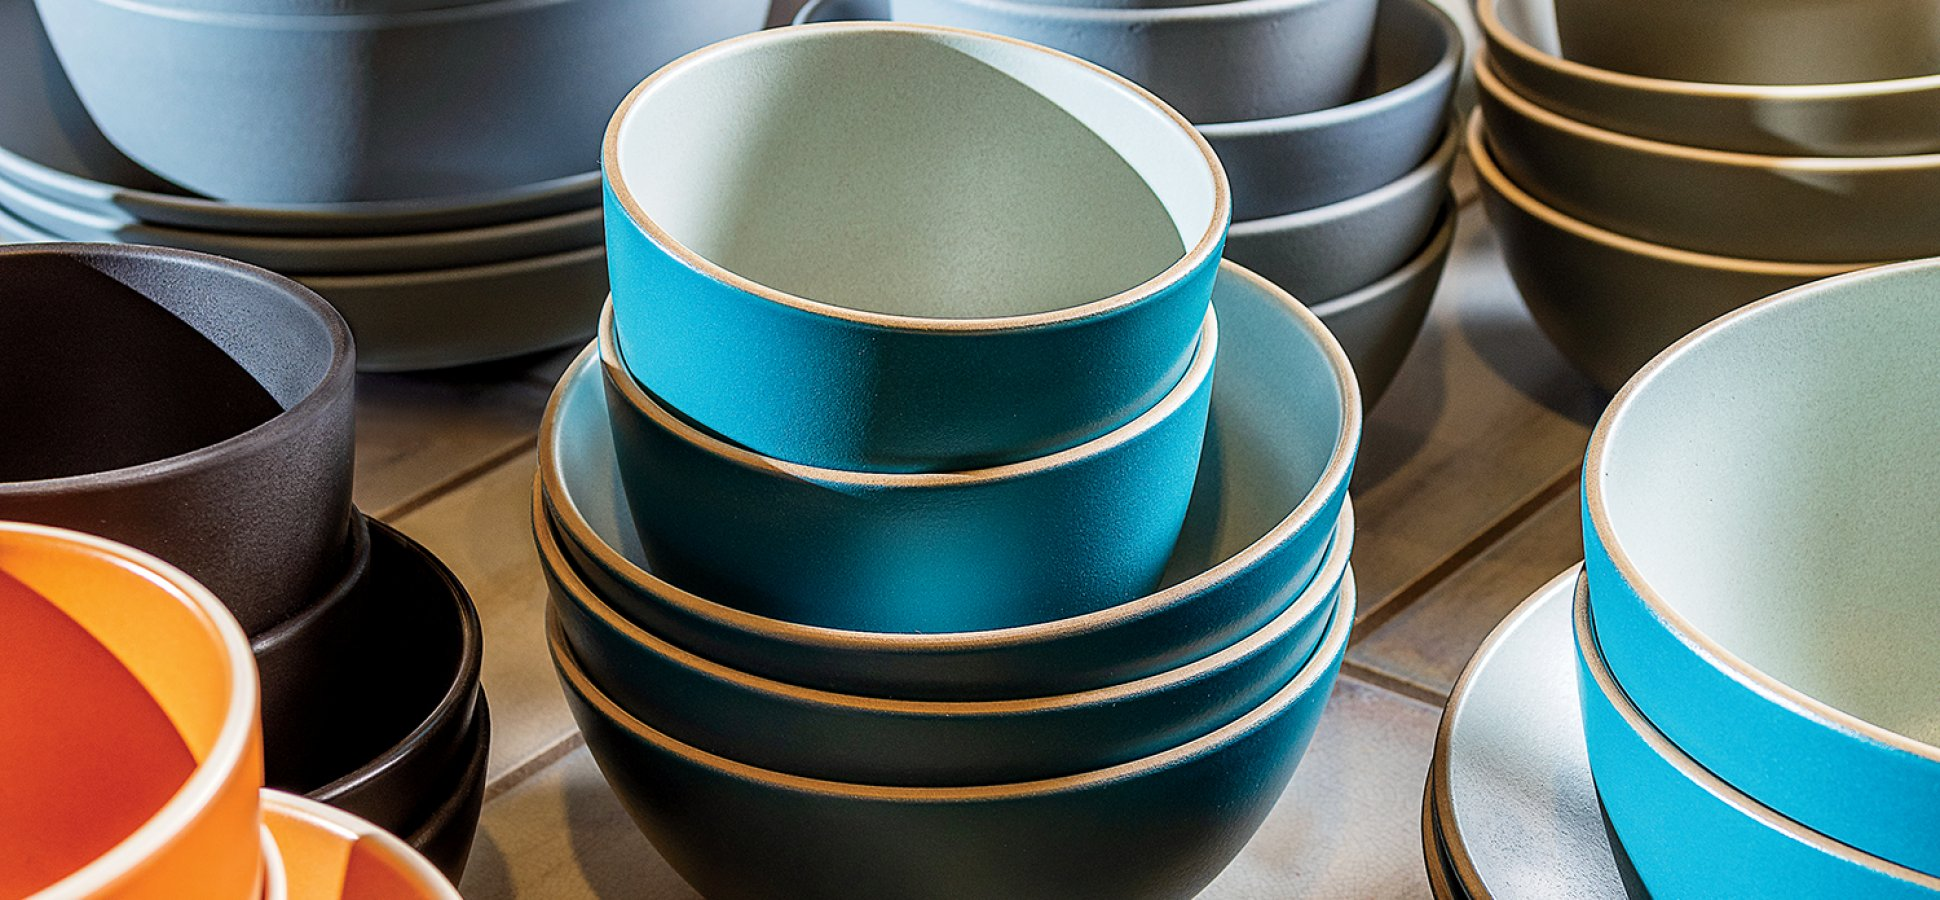 Heath Ceramics Had a Cult Following But No Money. Here's How 2 Designers Brought It Back From the Brink